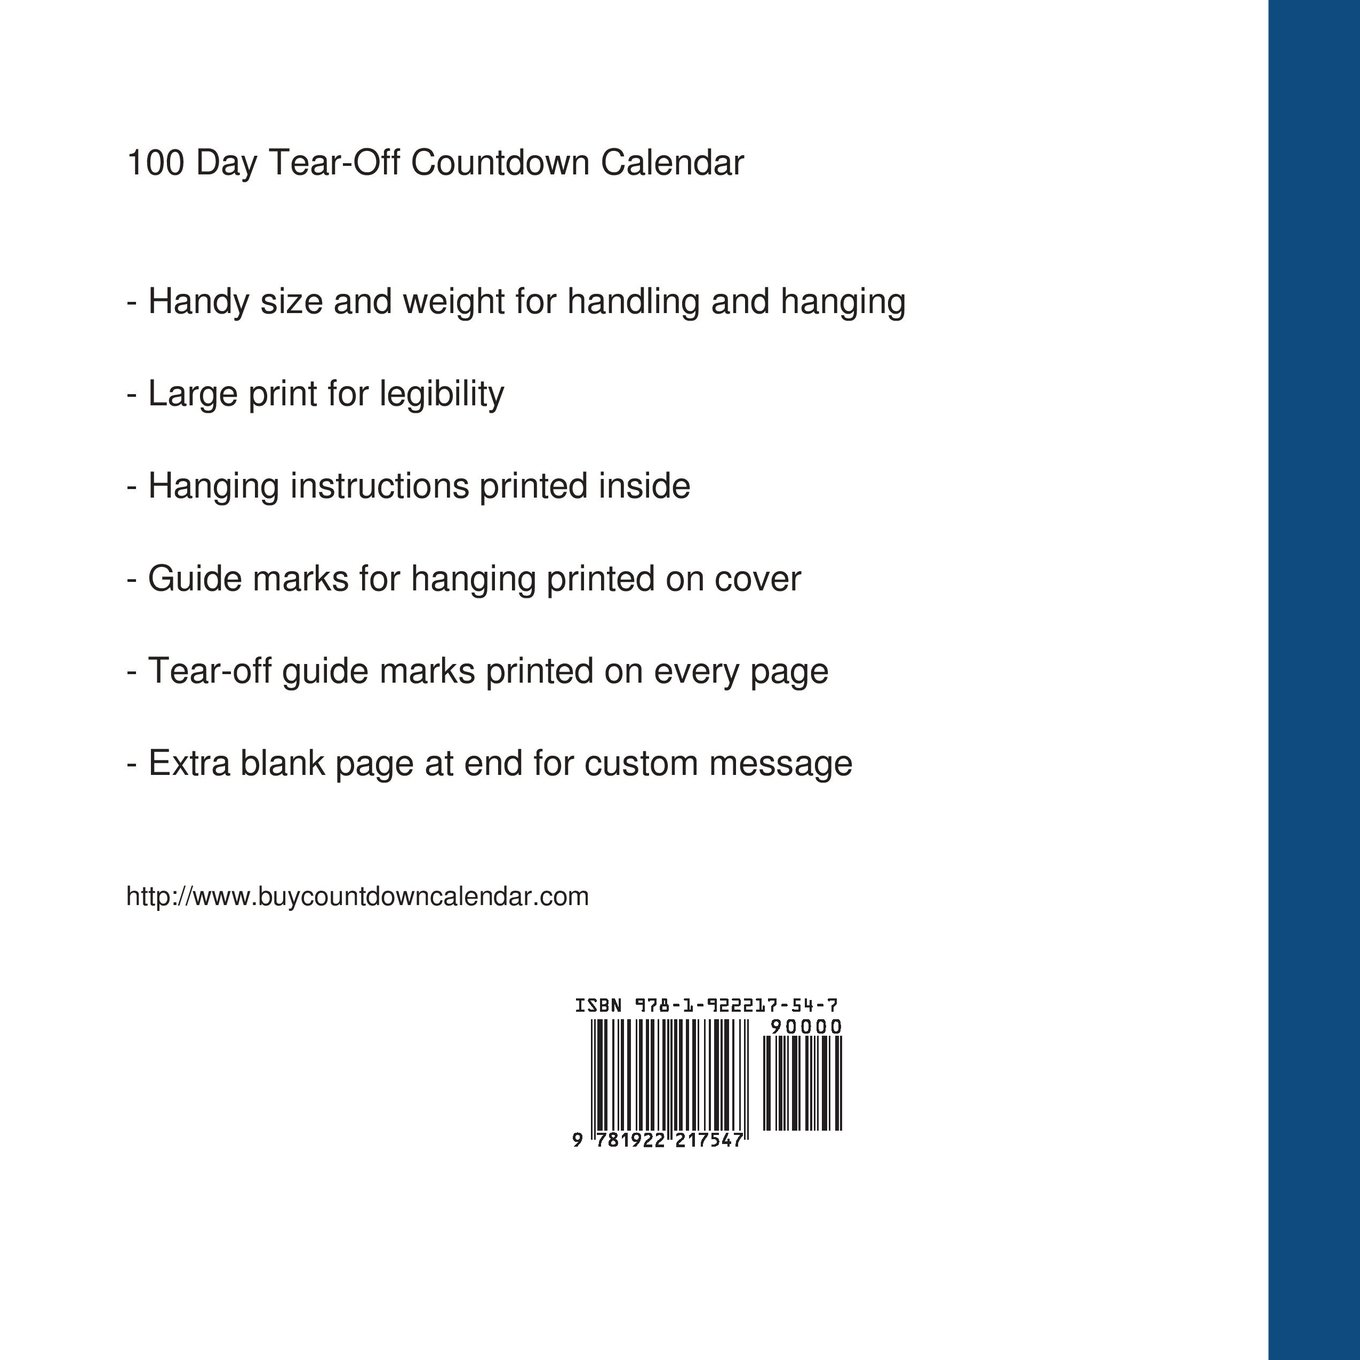 photograph relating to 100 Day Countdown Printable referred to as : 100 Working day Tear-Off Countdown Calendar